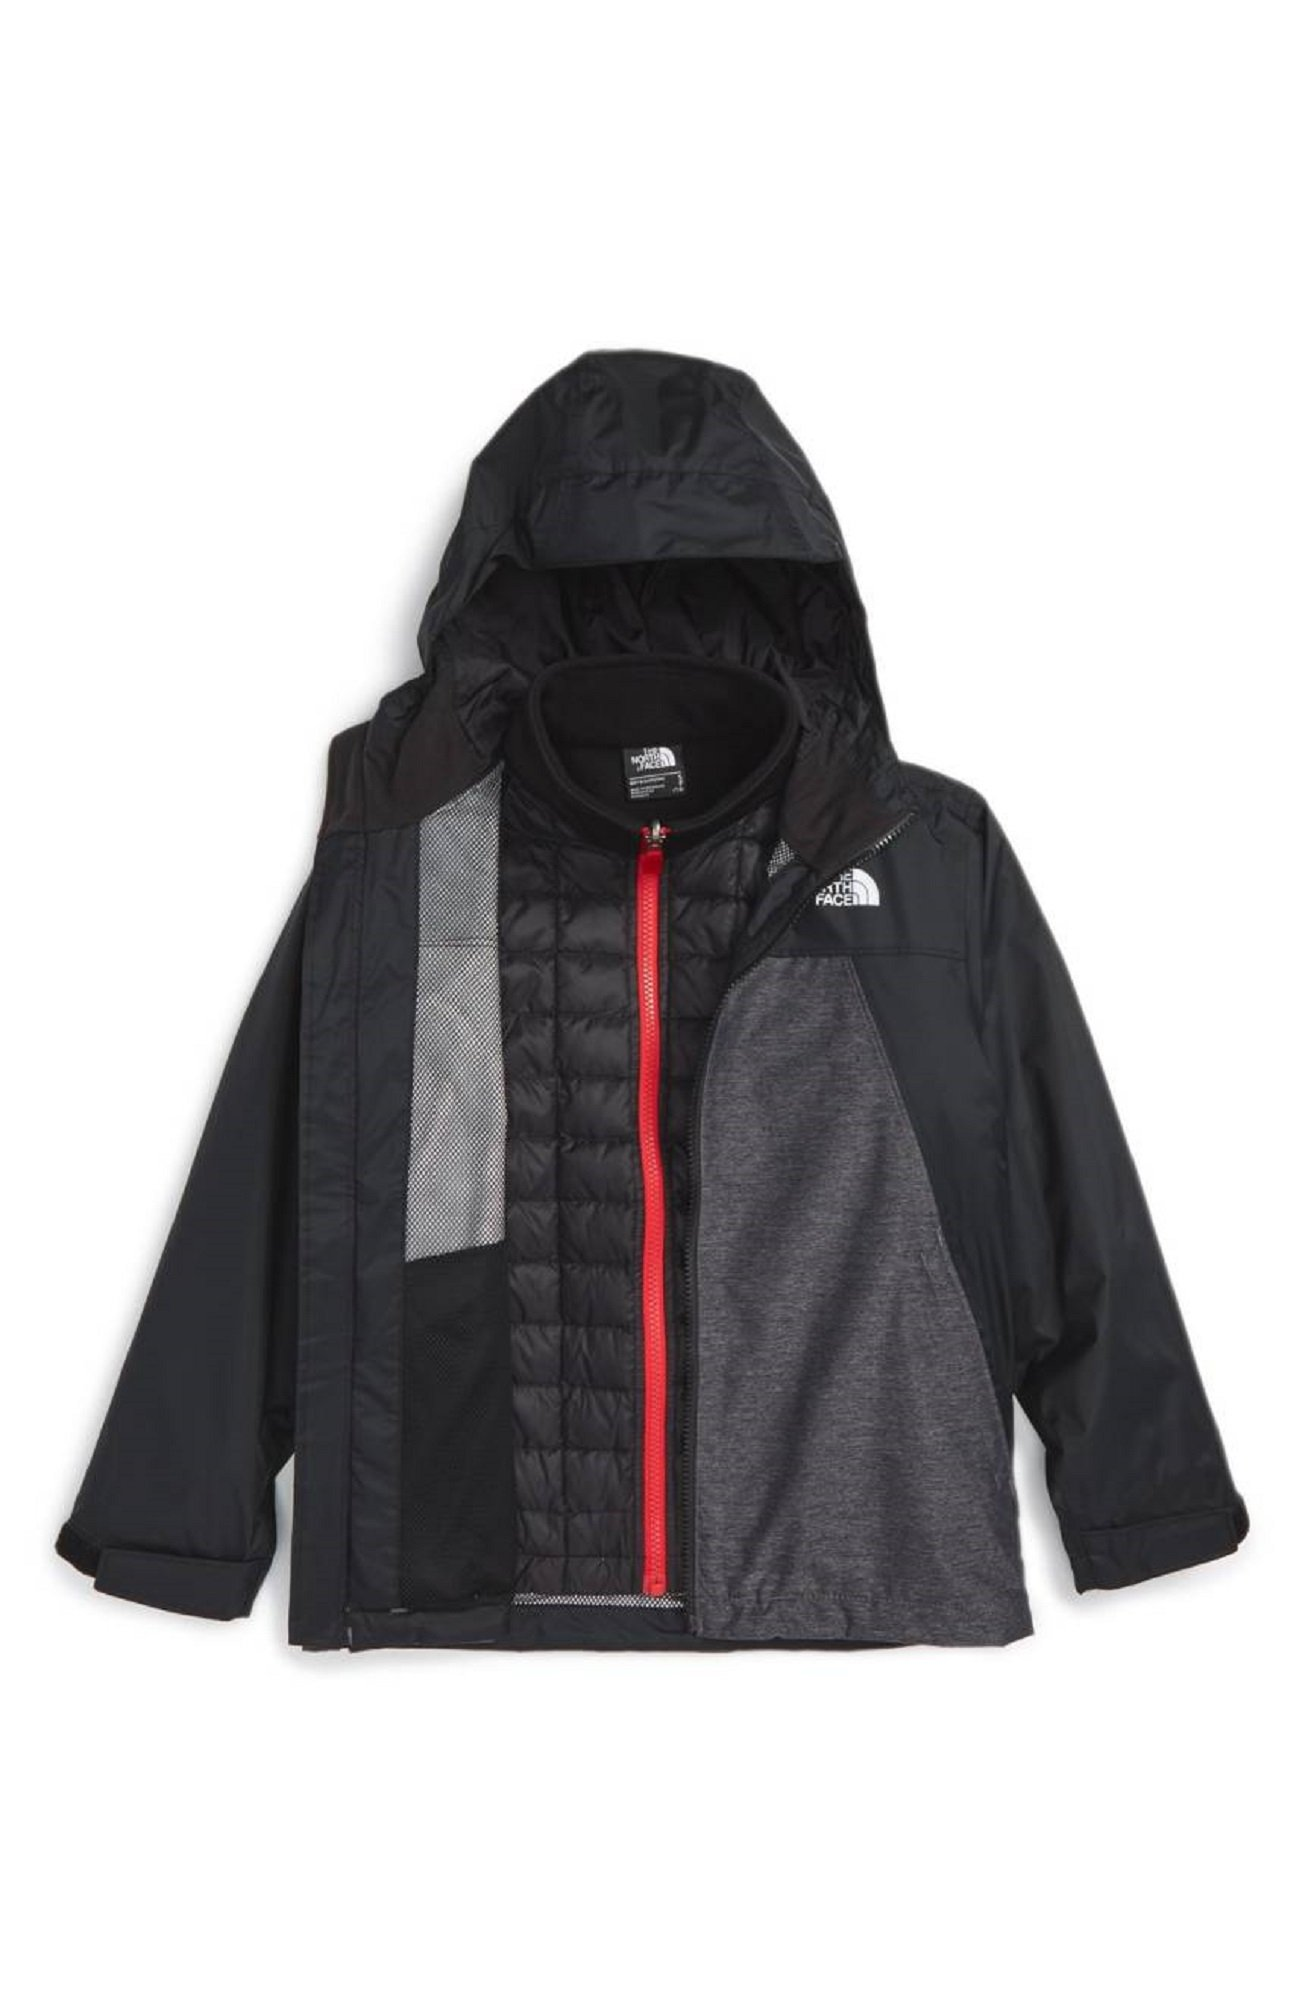 The North Face Youth Boy's Thermoball Triclimate 3-In-1 Waterproof Snow Jacket (S 8)